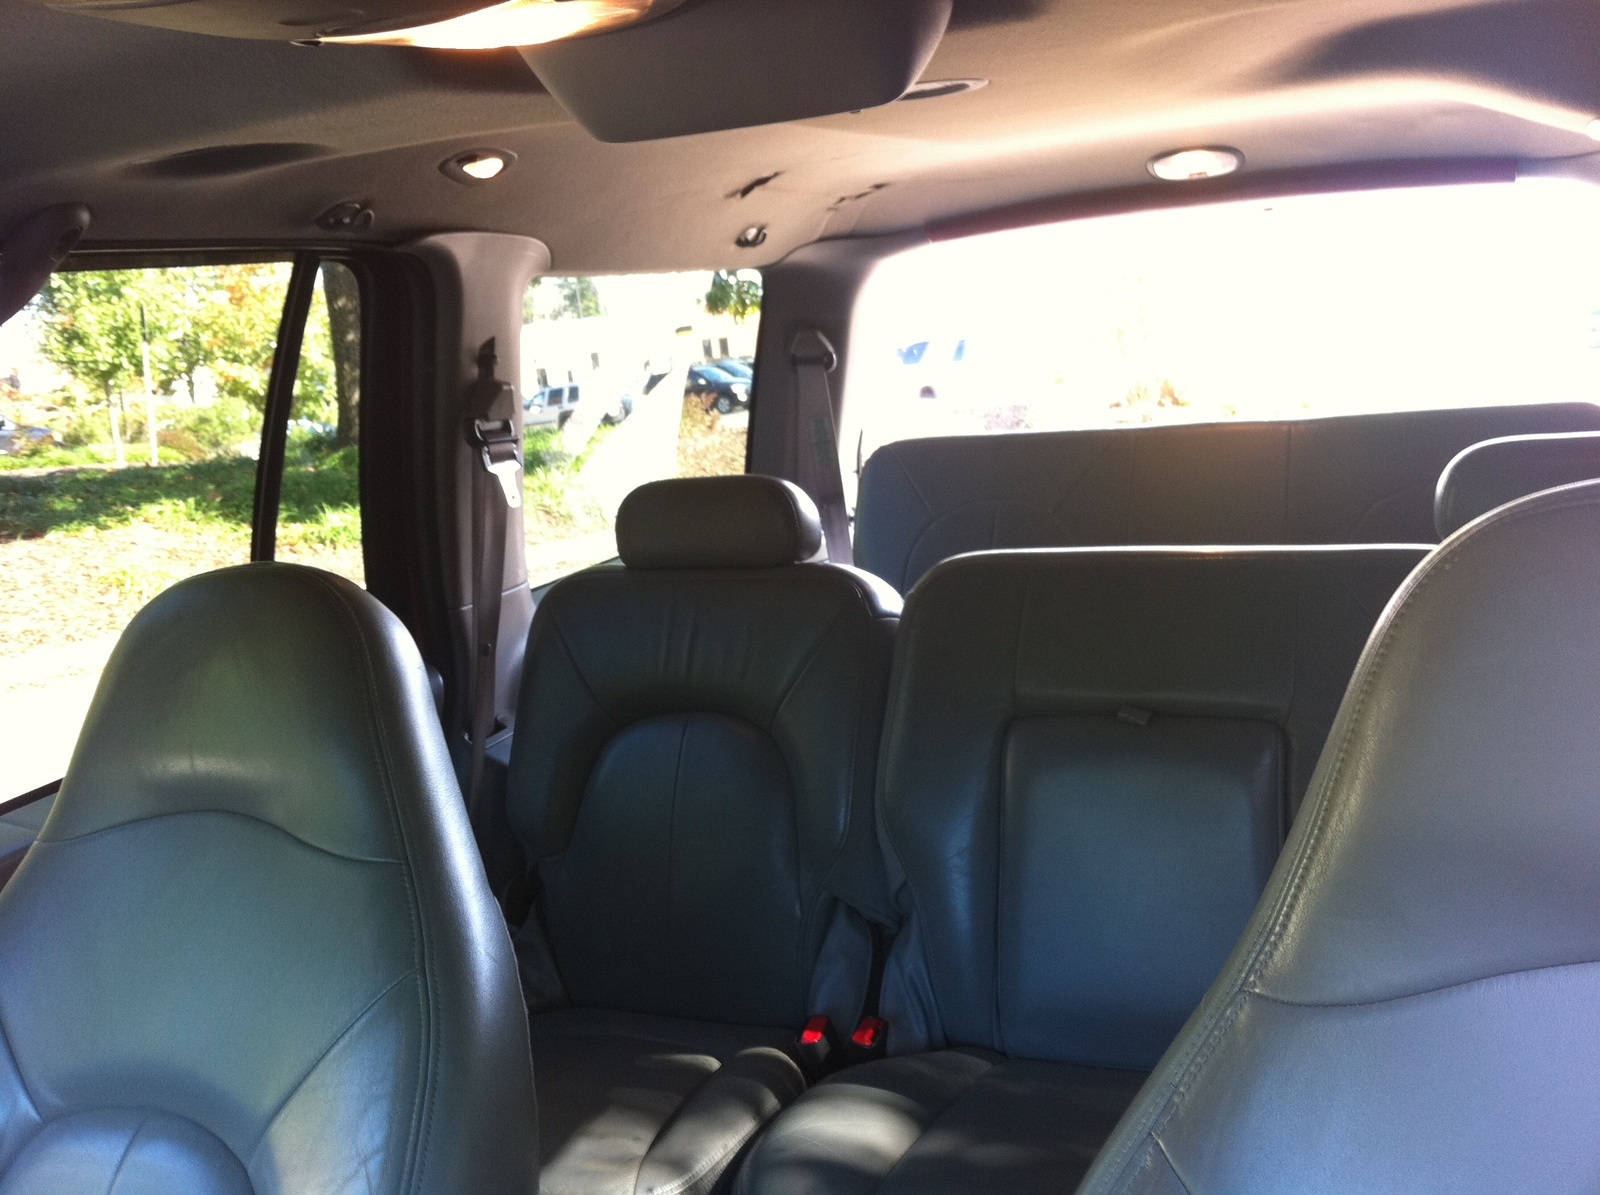 2002 Ford Expedition Interior